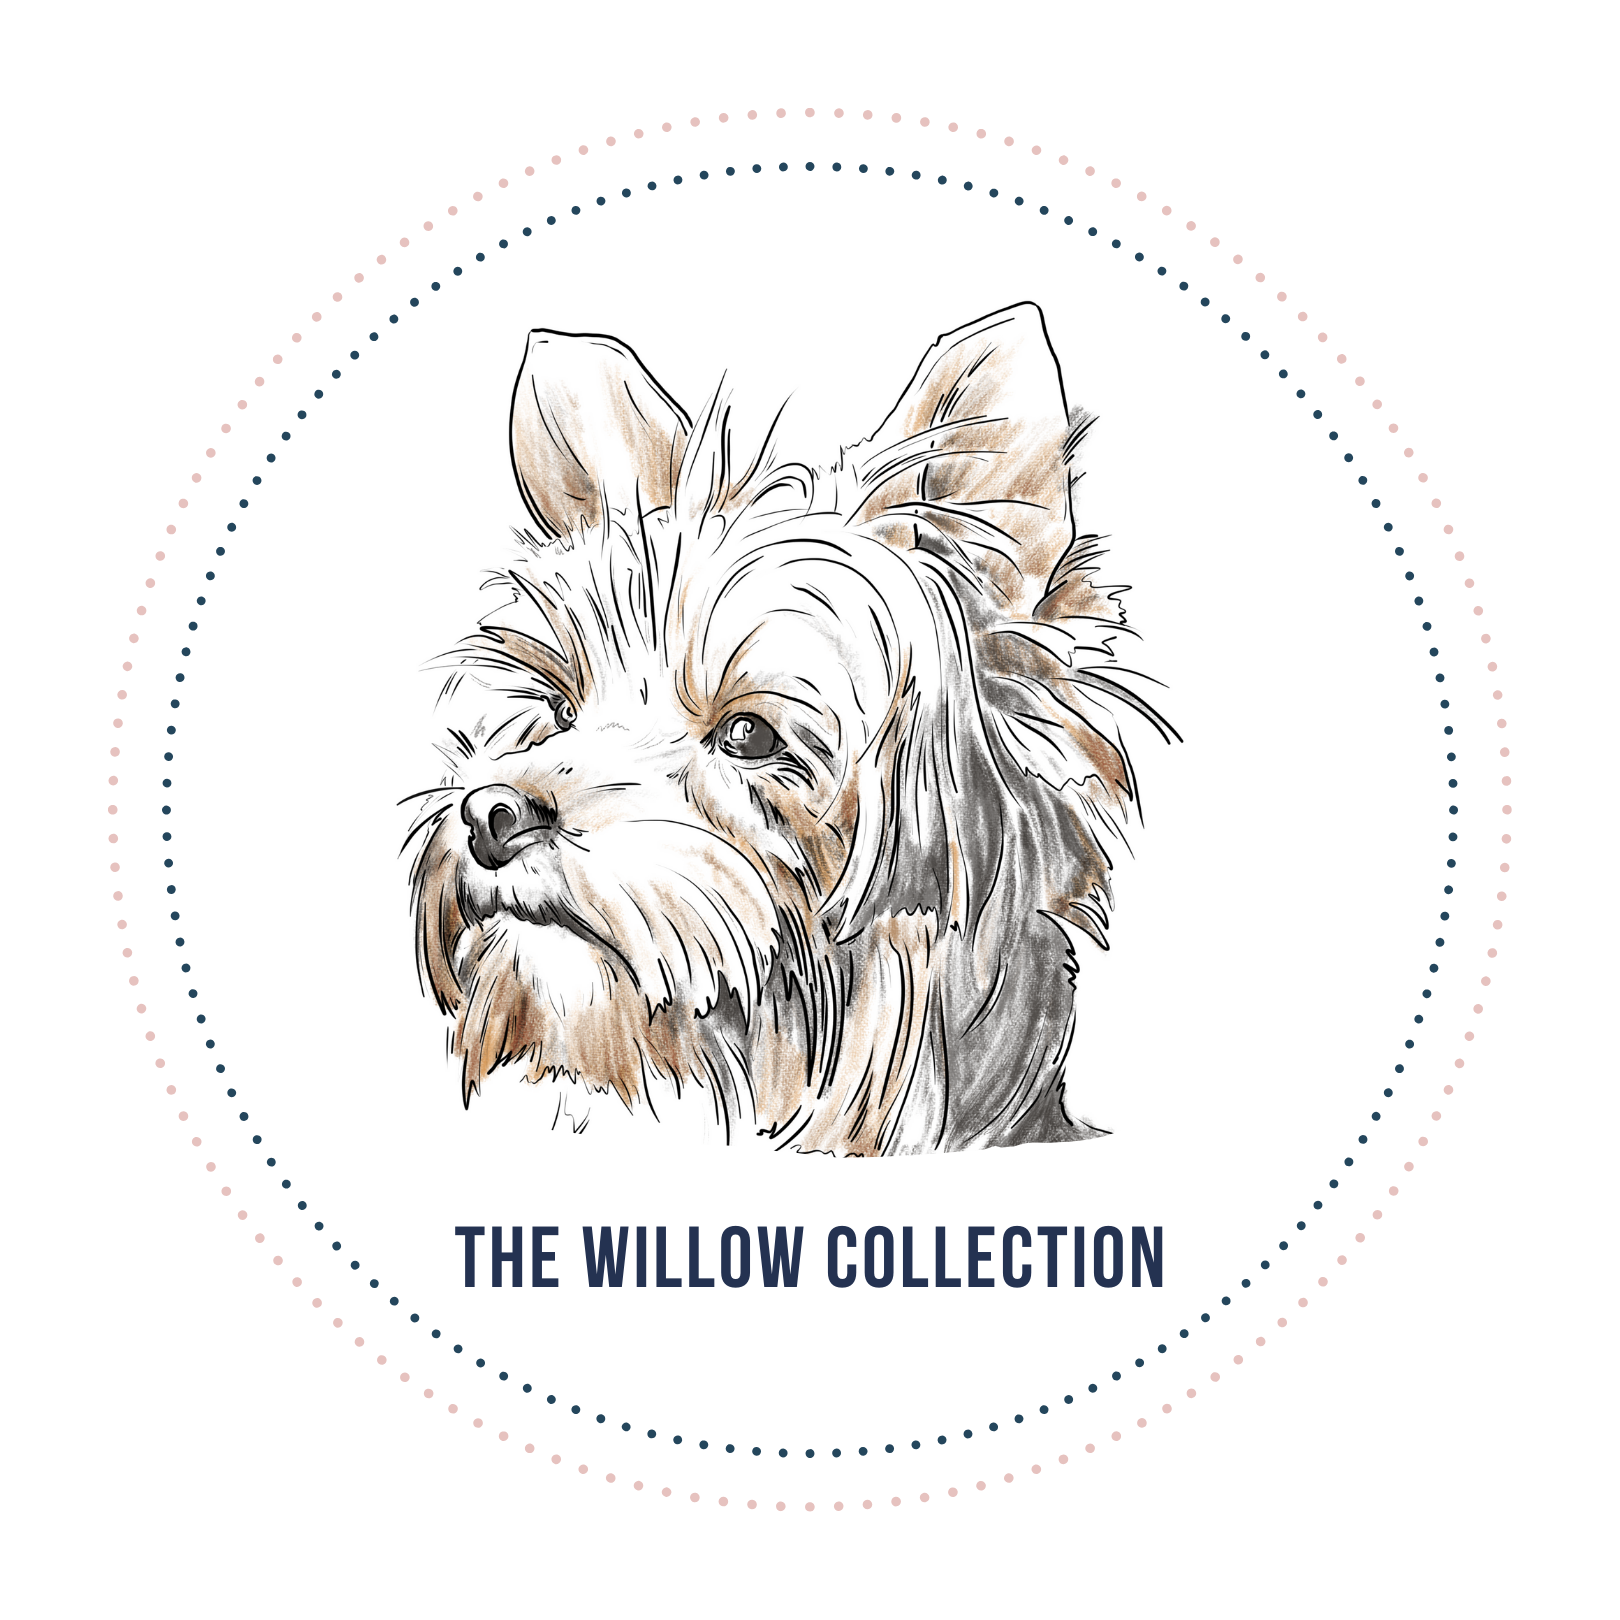 The Willow Collection